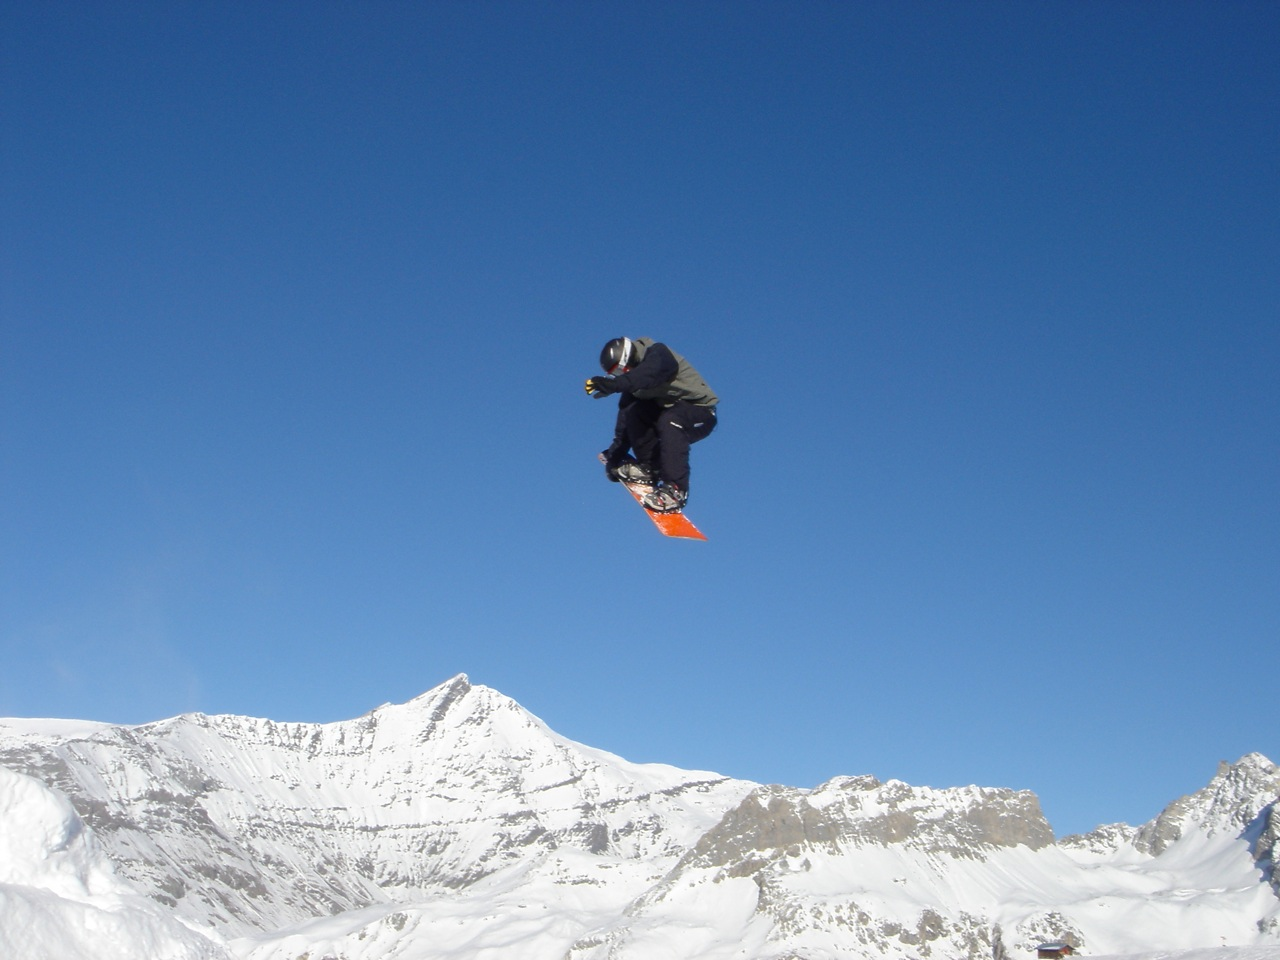 Getting fat air on a snowboard in Val d'Isere.